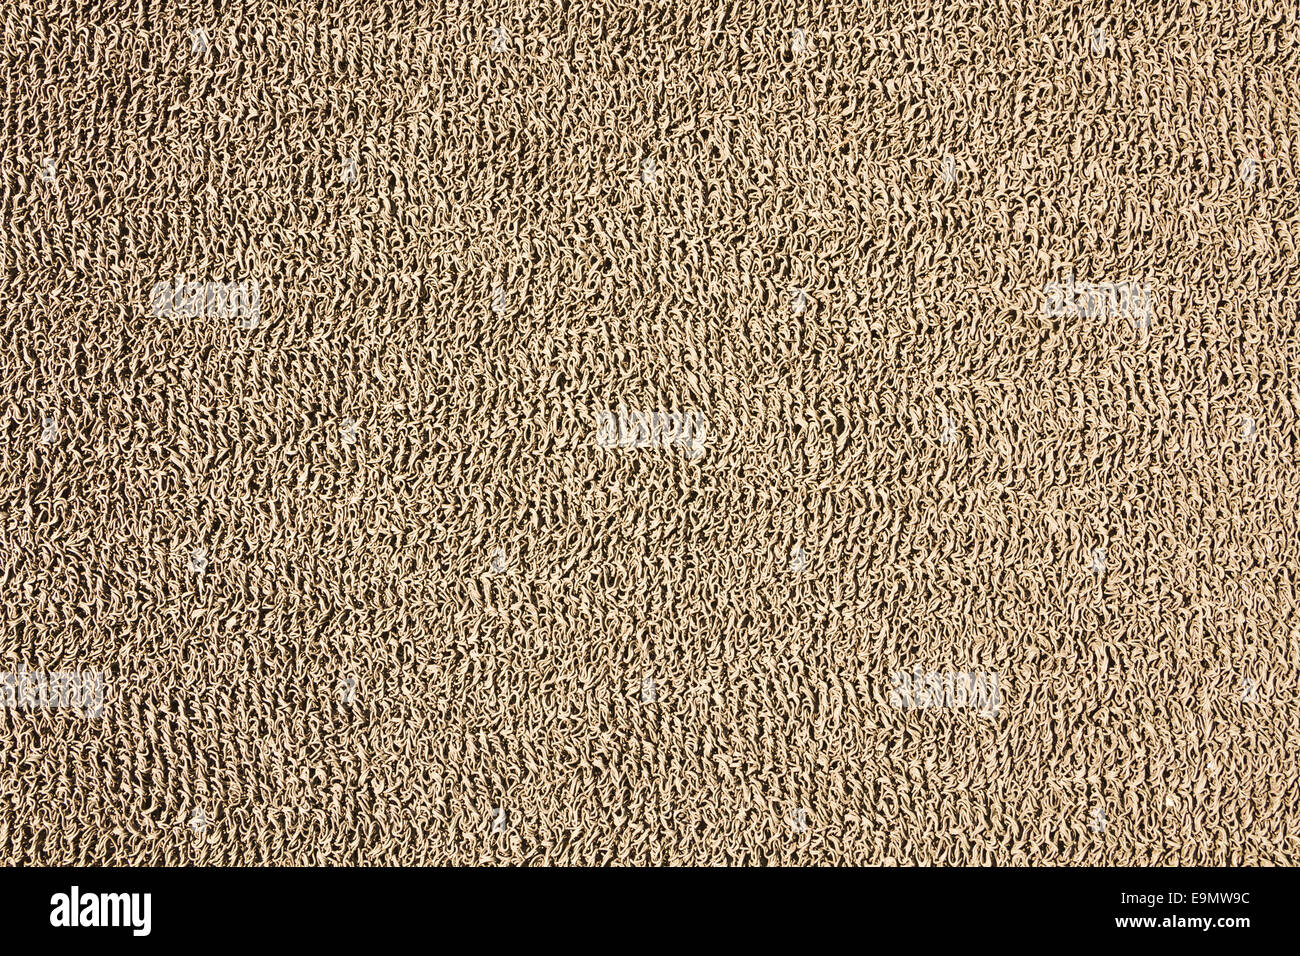 Foot Mat Pattern Stock Photo Royalty Free Image 74832280